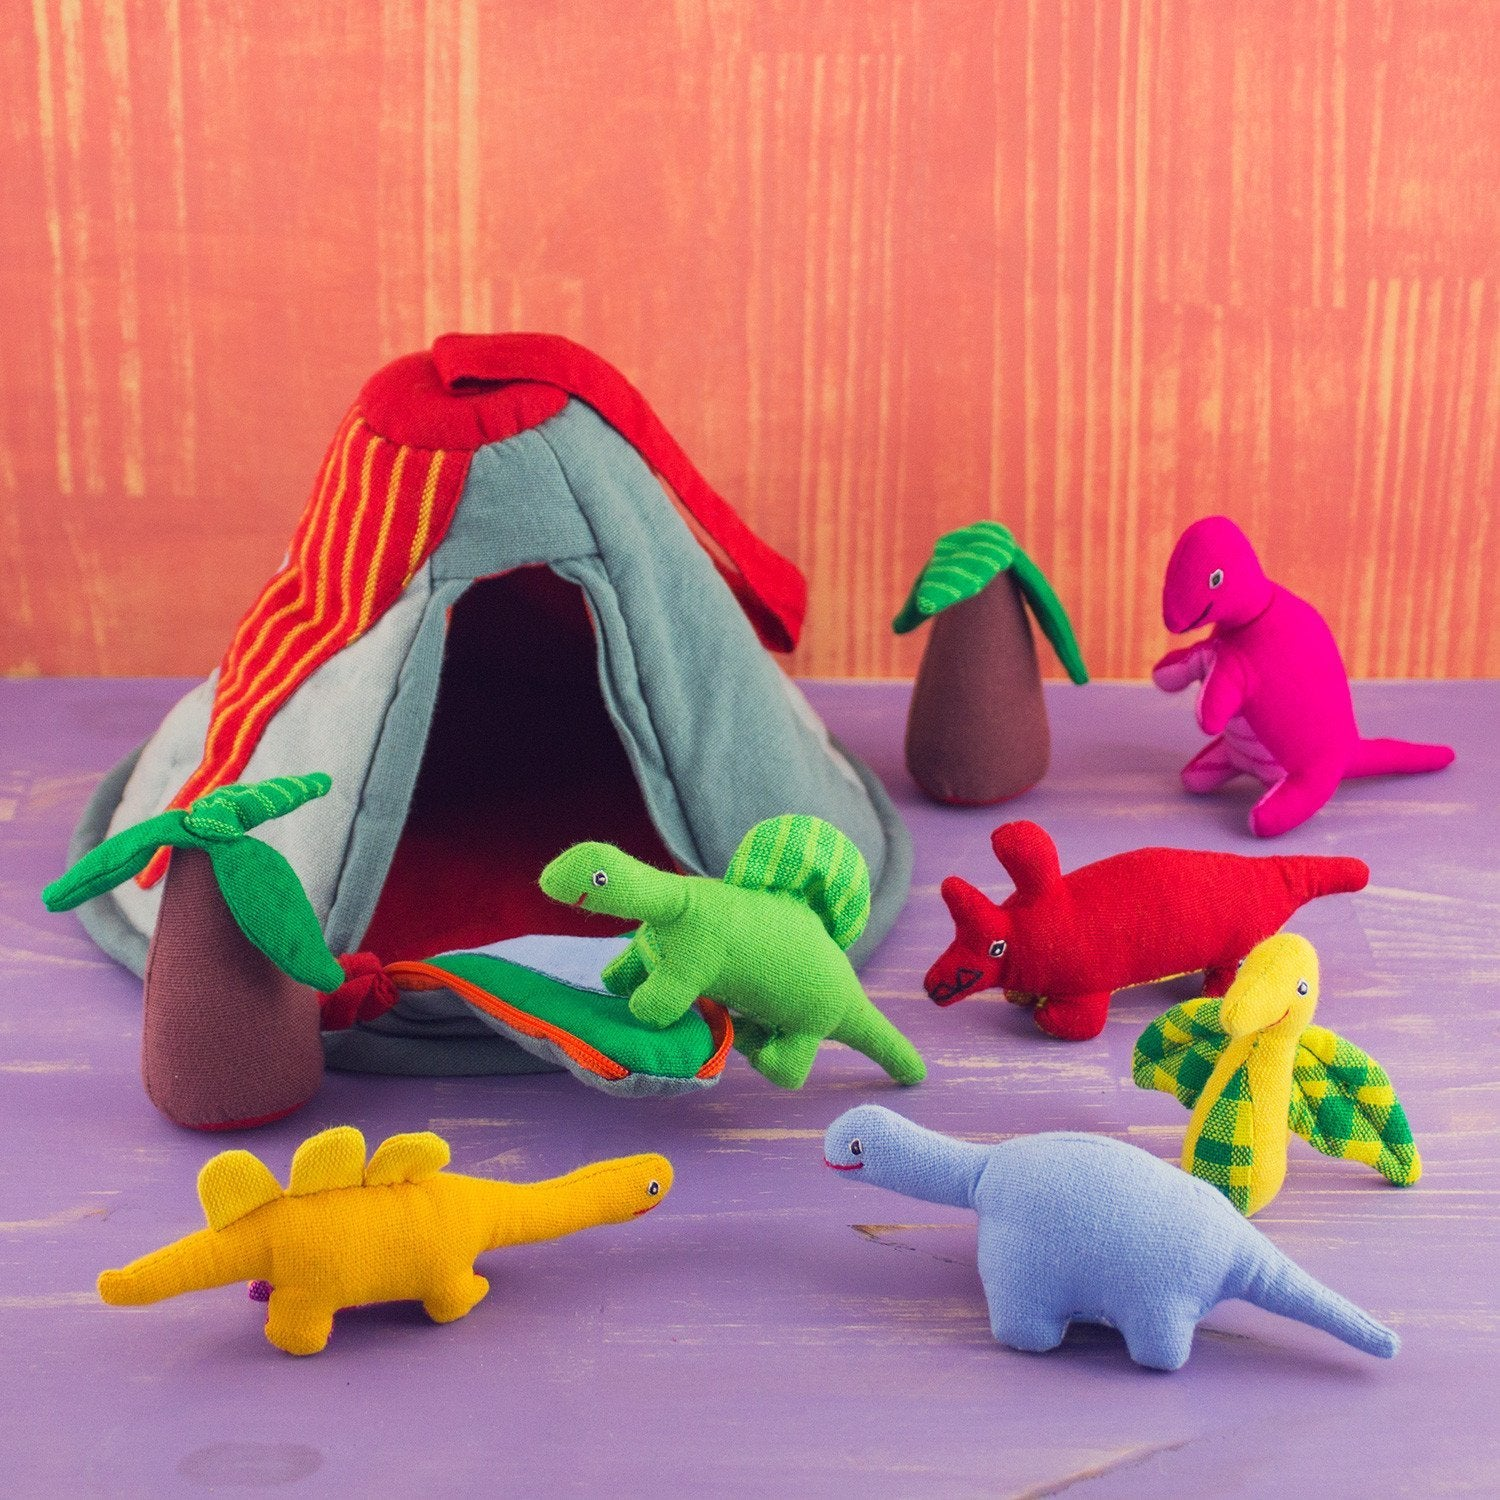 6 soft happy dinosaur toys, two soft palm tree toys, and a soft volcano toy. multicolored